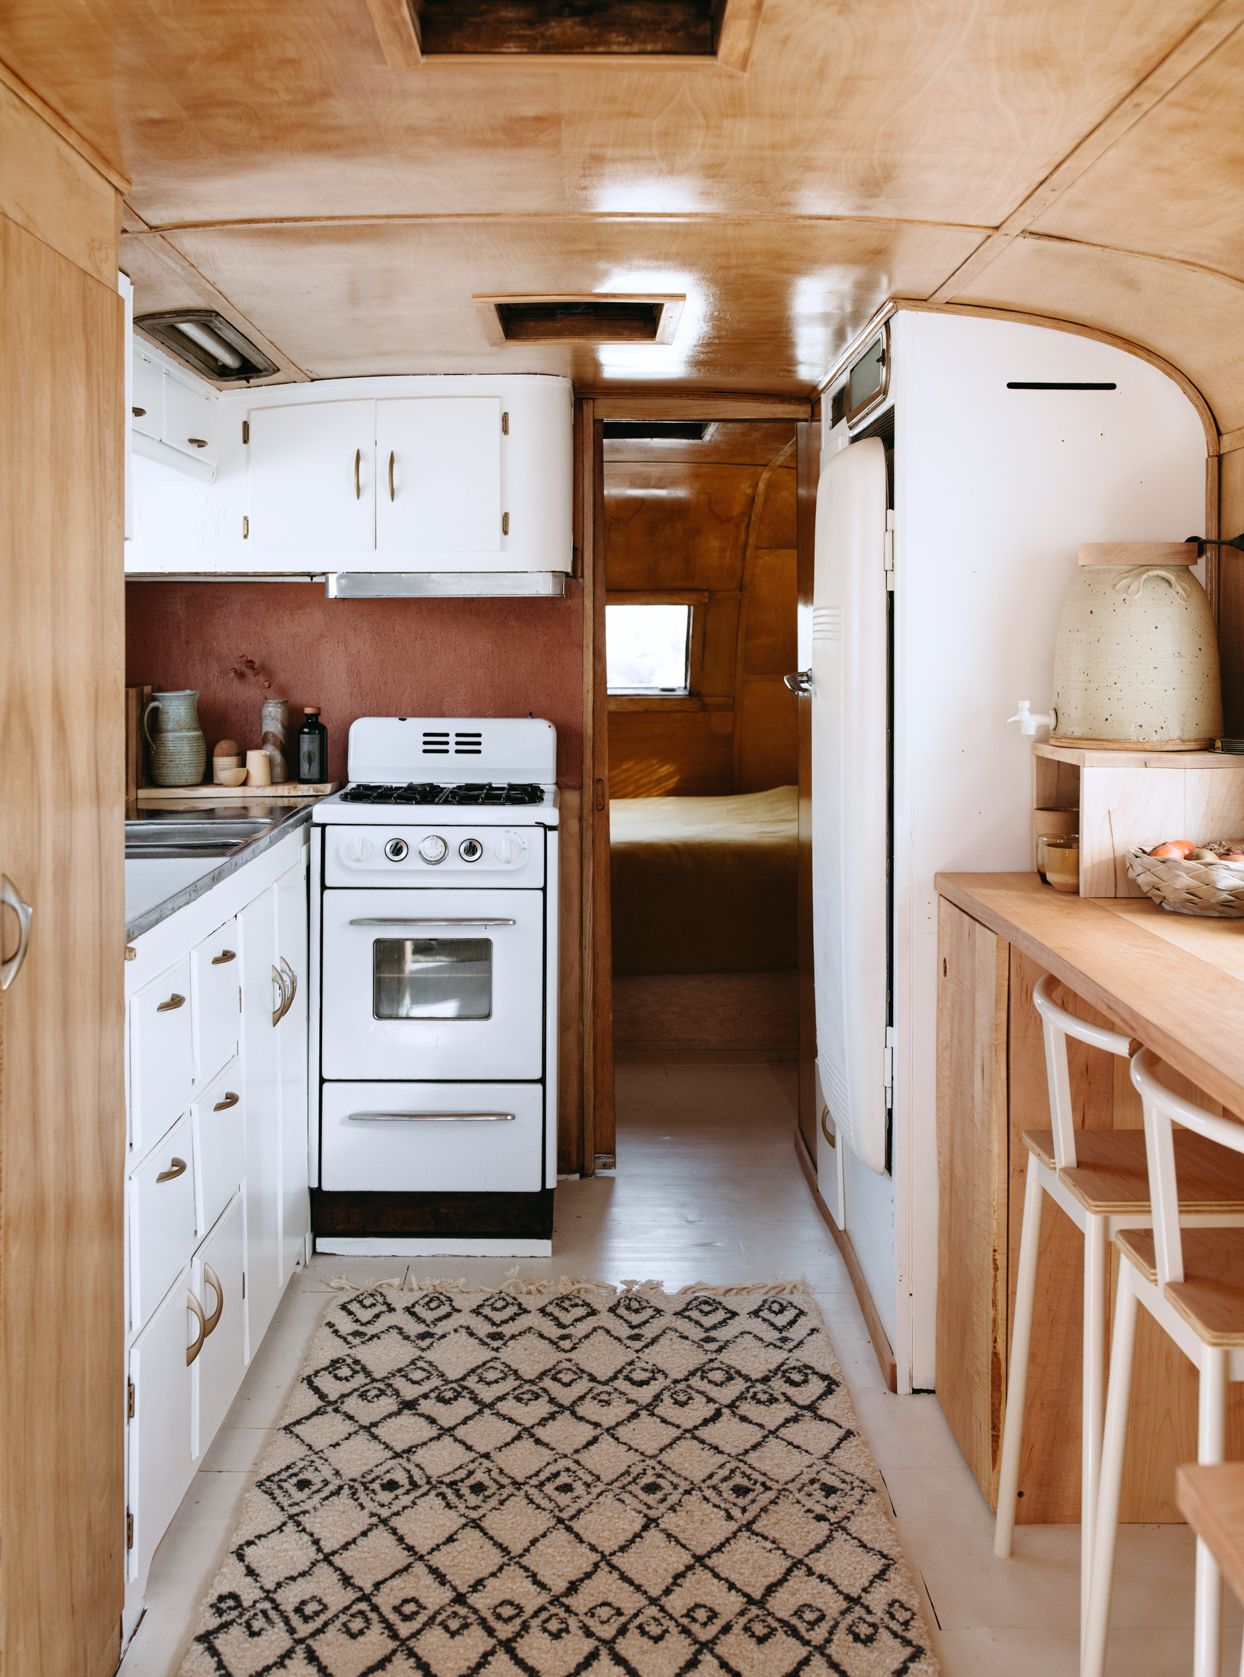 expanded view of kitchen in trailer home